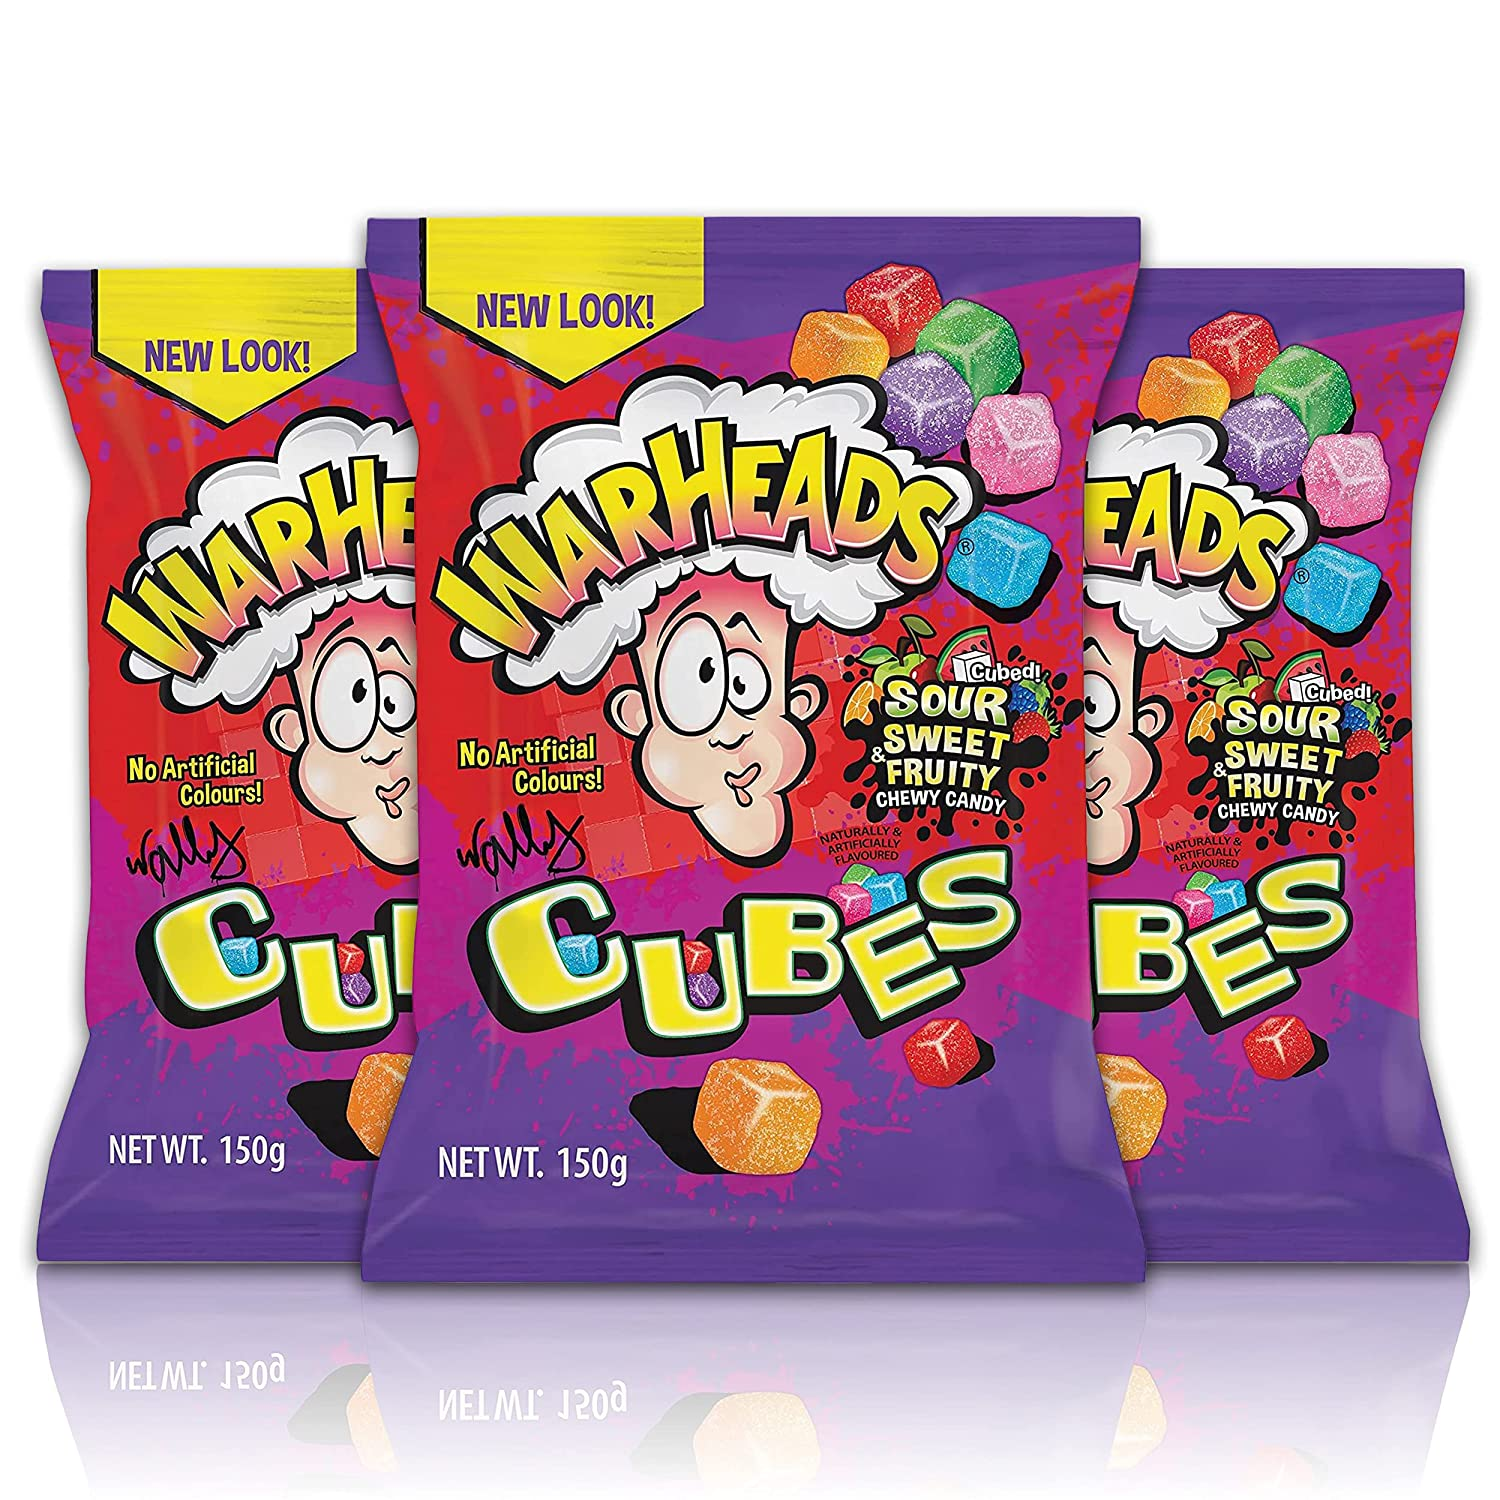 Warheads Chewy Cubes 5 All items free Year-end annual account shipping Pack of oz 3